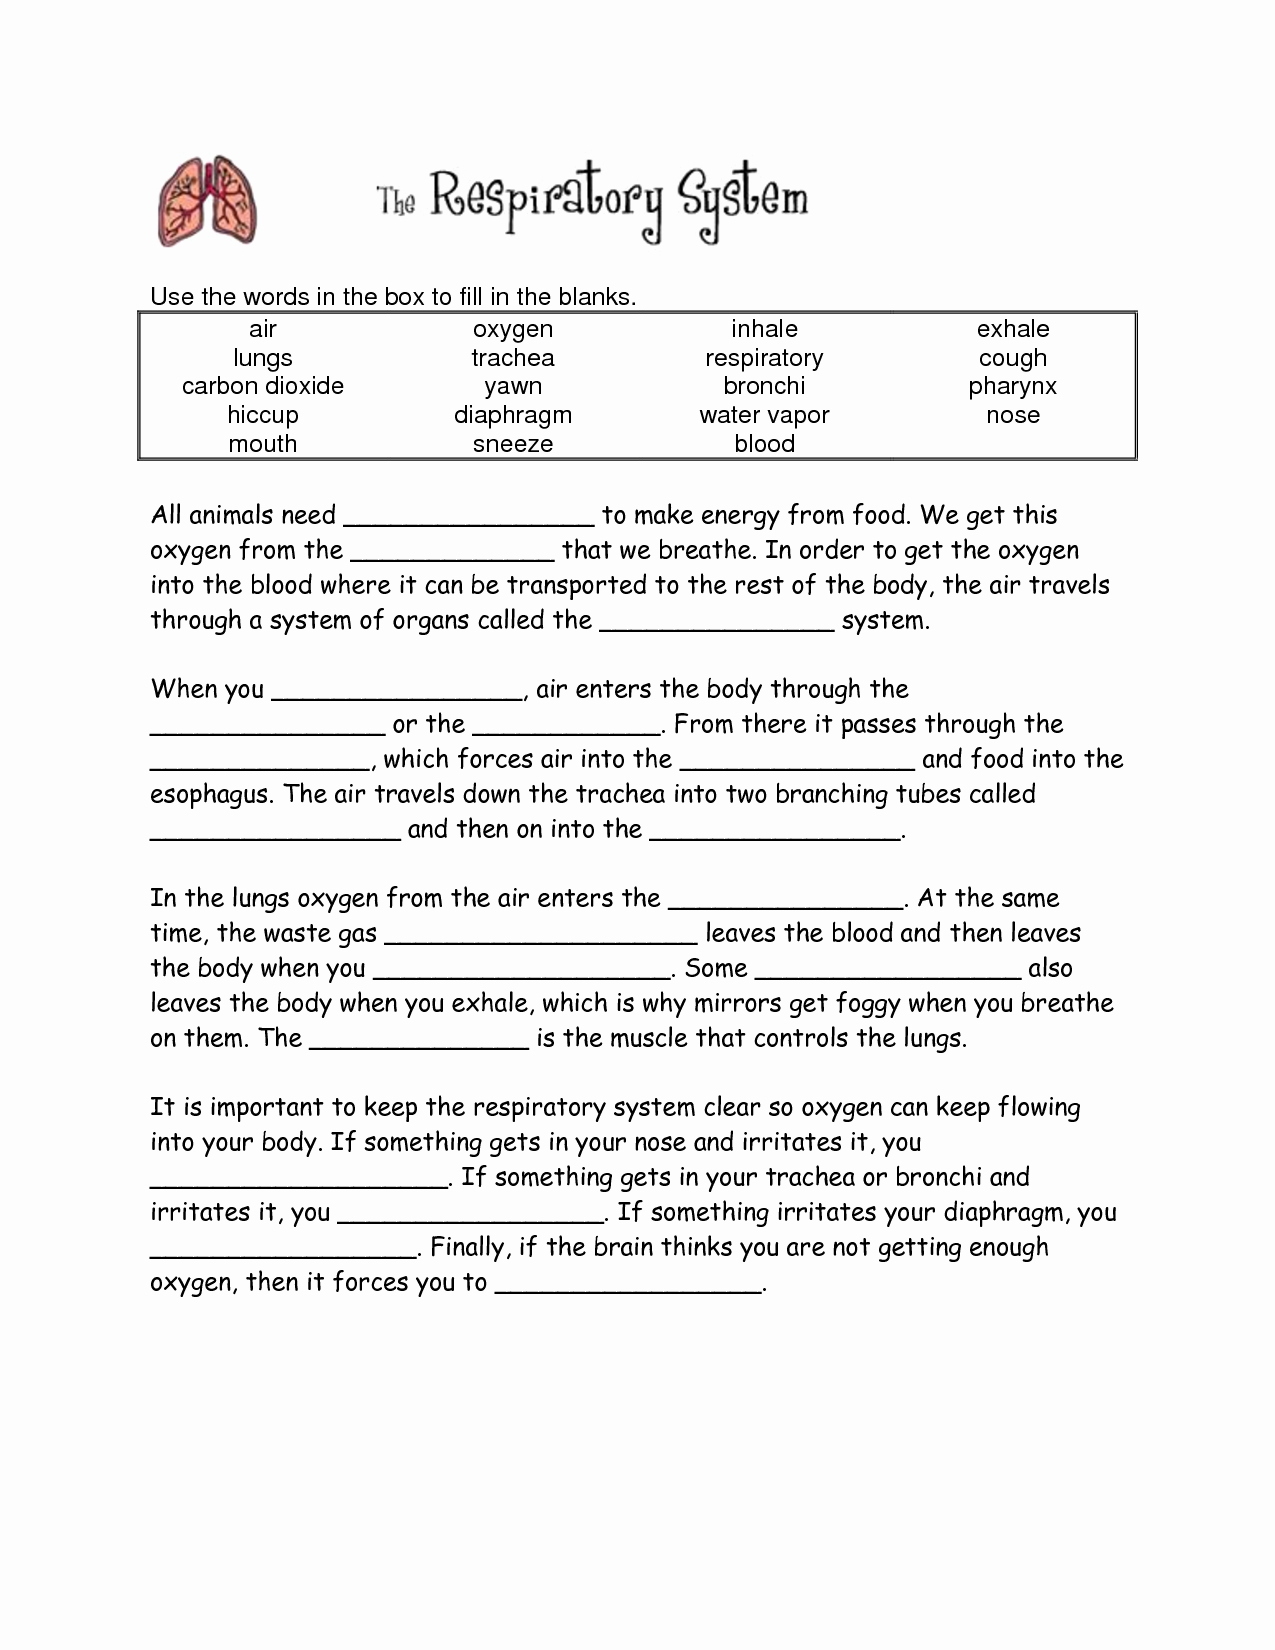 Respiratory System Worksheet Answer Key Fresh 16 Best Of the Respiratory System Worksheet Answers